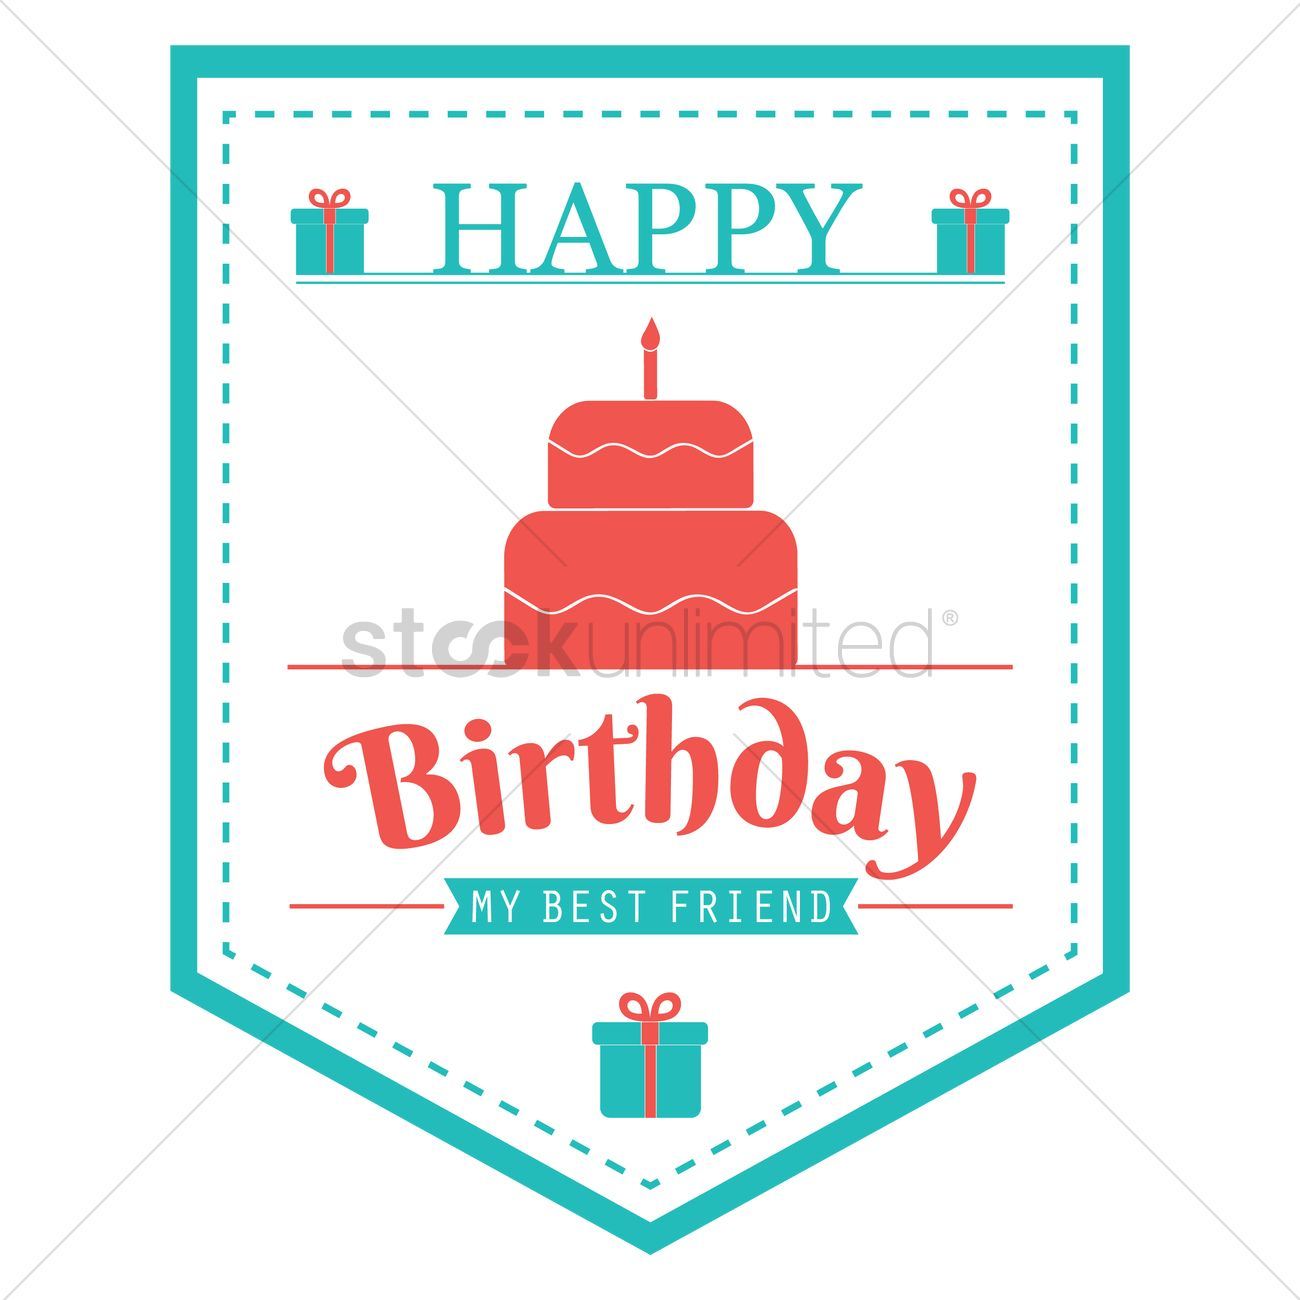 happy birthday banner design vector image 1799584 stockunlimited